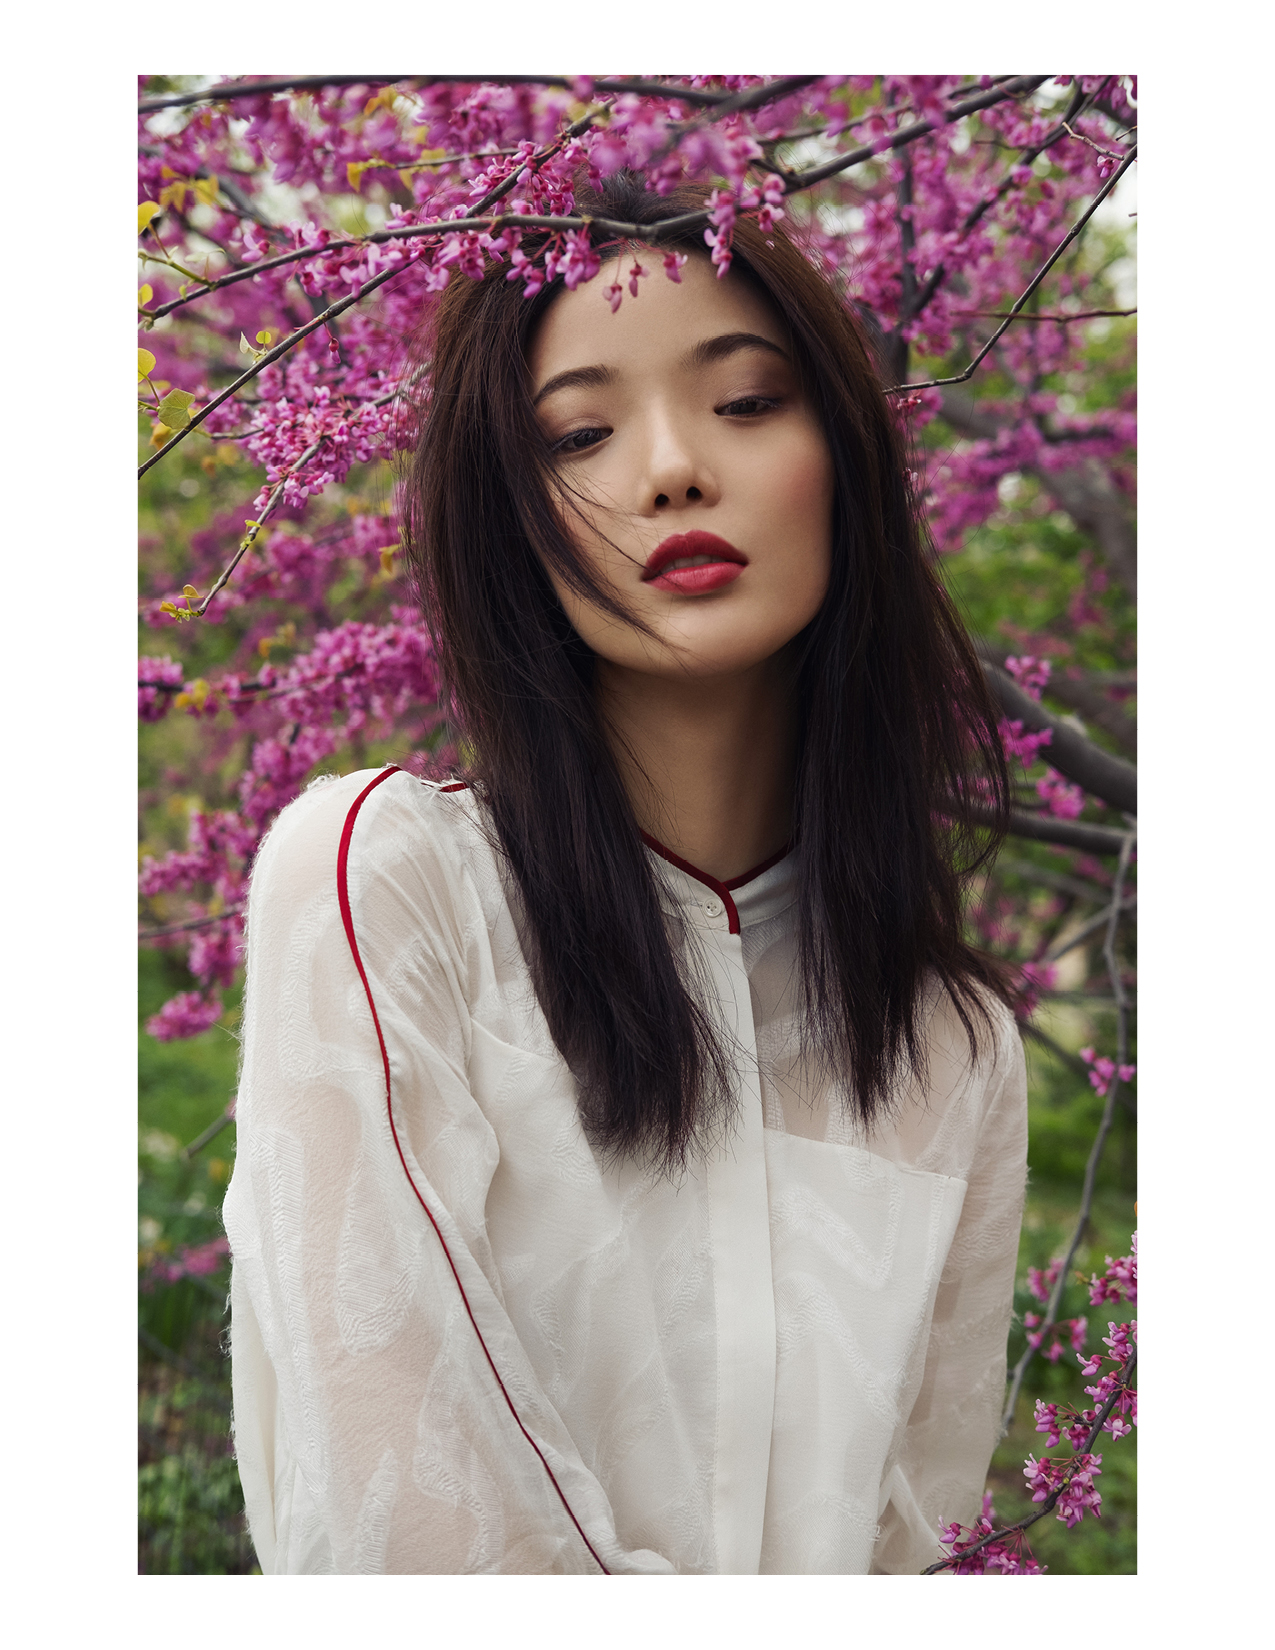 ROSE &I IVY Journal Beauty Editorial Ever Bloom